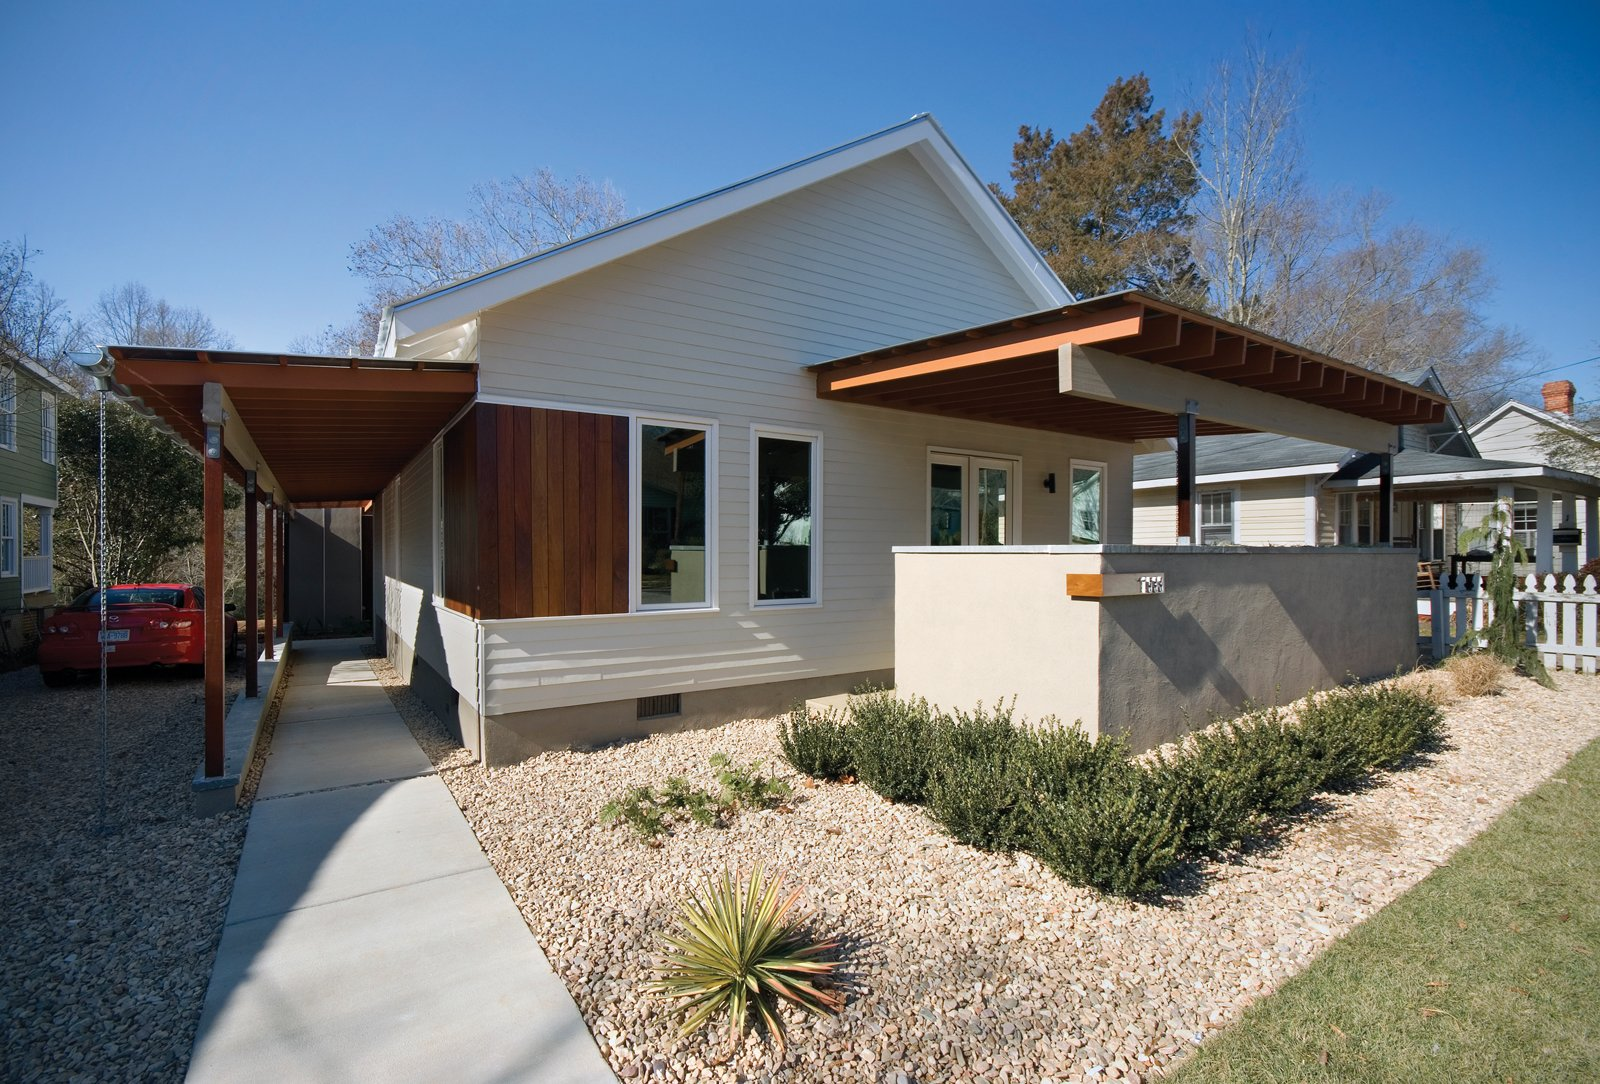 The barker residence in raleigh north carolina is designed by vernacular studio located in